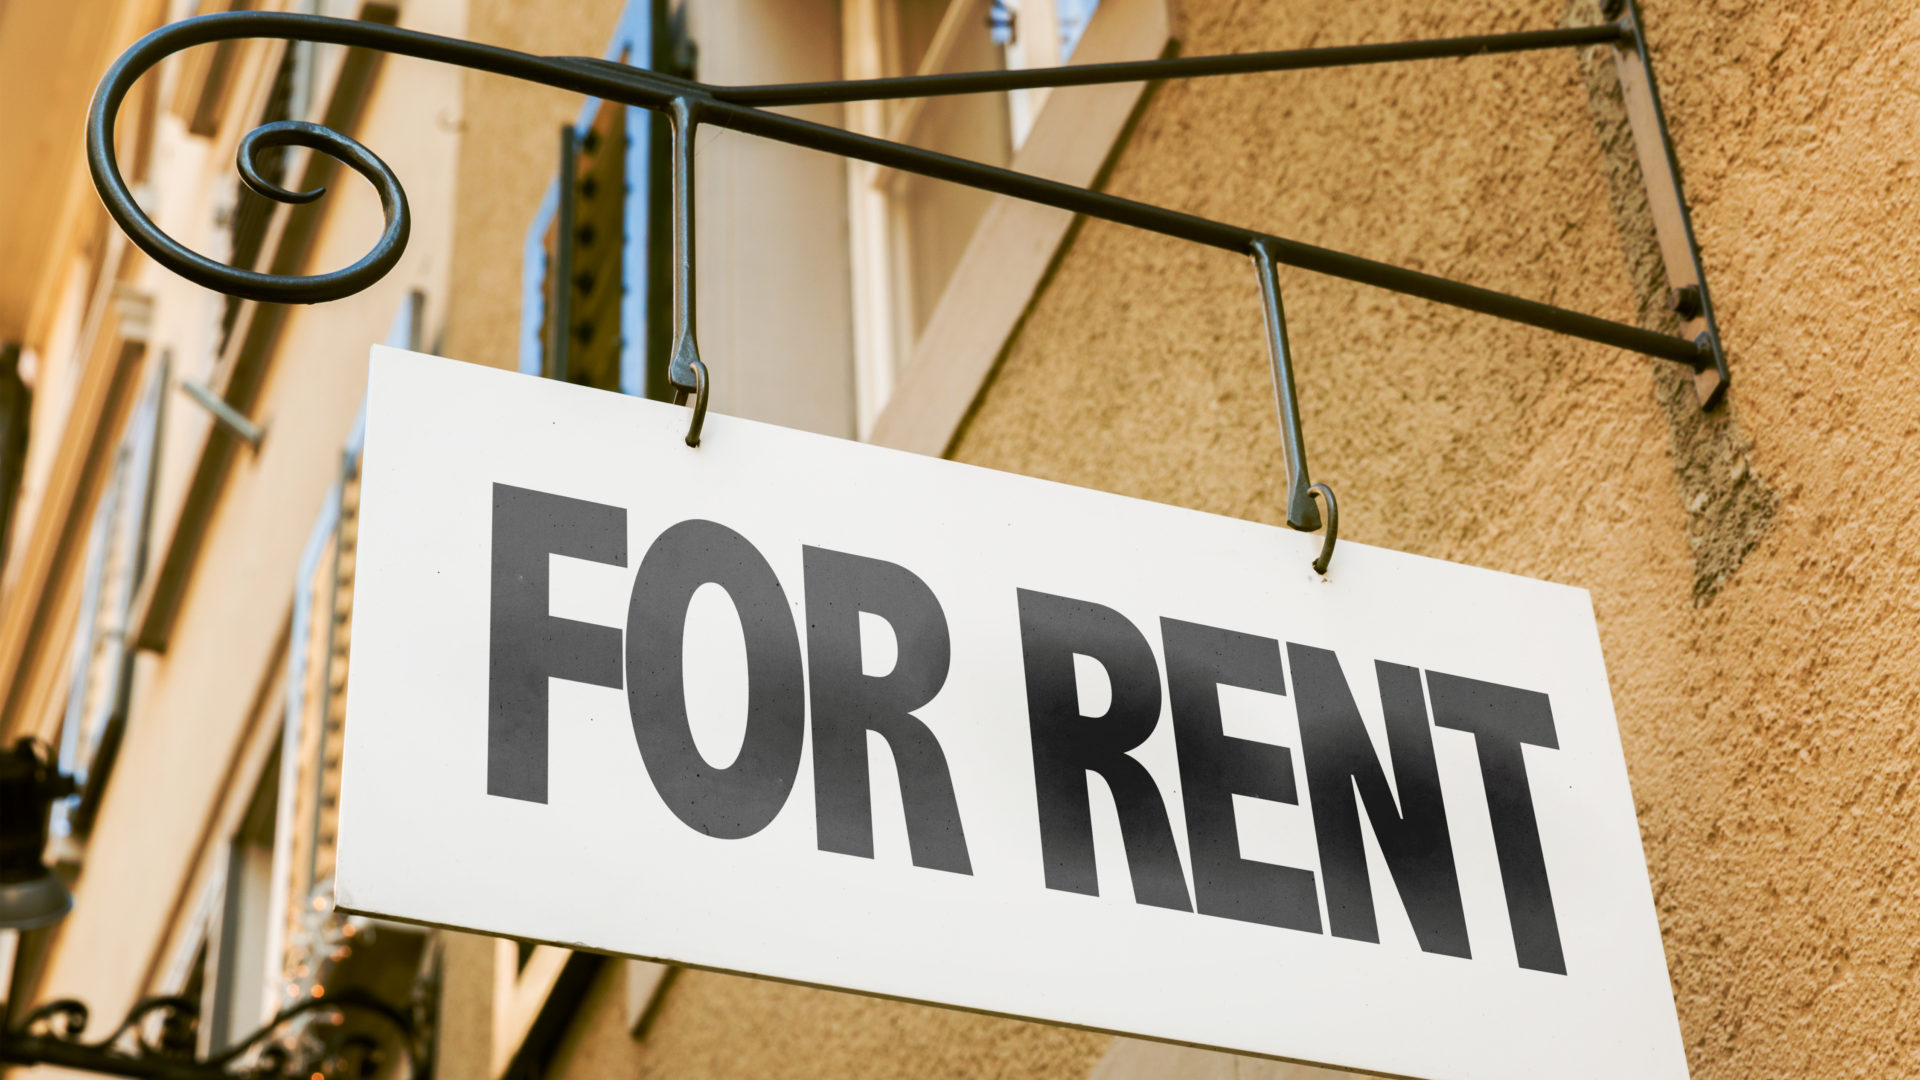 Individuals who are single in NYC get hit the hardest when it comes to rent